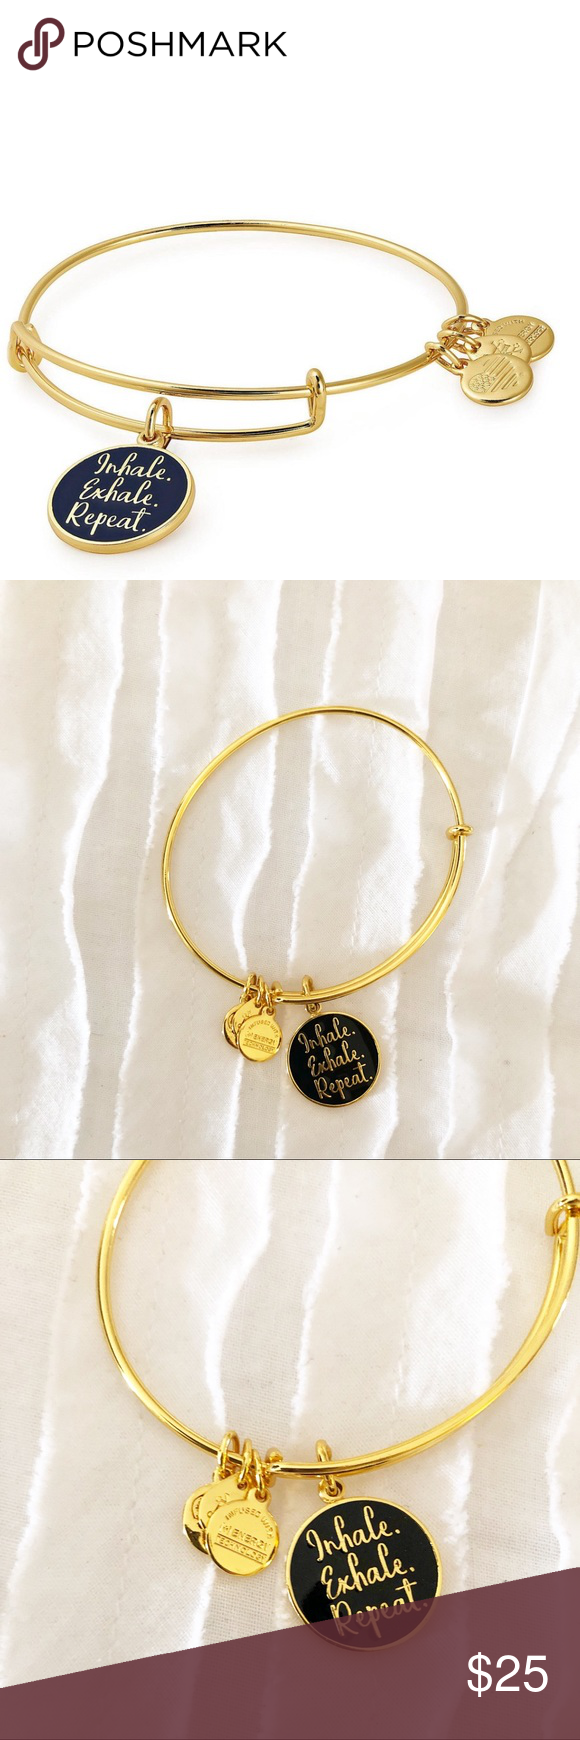 Alex and Ani Gold Metallic Inhale Exhale Bangle Excellent, like-new condition; no noticeable flaws. Alex and Ani Gold Metallic Inhale Exhale Bangle Gold combo Alex and Ani Jewelry Bracelets #inhaleexhale Alex and Ani Gold Metallic Inhale Exhale Bangle Excellent, like-new condition; no noticeable flaws. Alex and Ani Gold Metallic Inhale Exhale Bangle Gold combo Alex and Ani Jewelry Bracelets #inhaleexhale